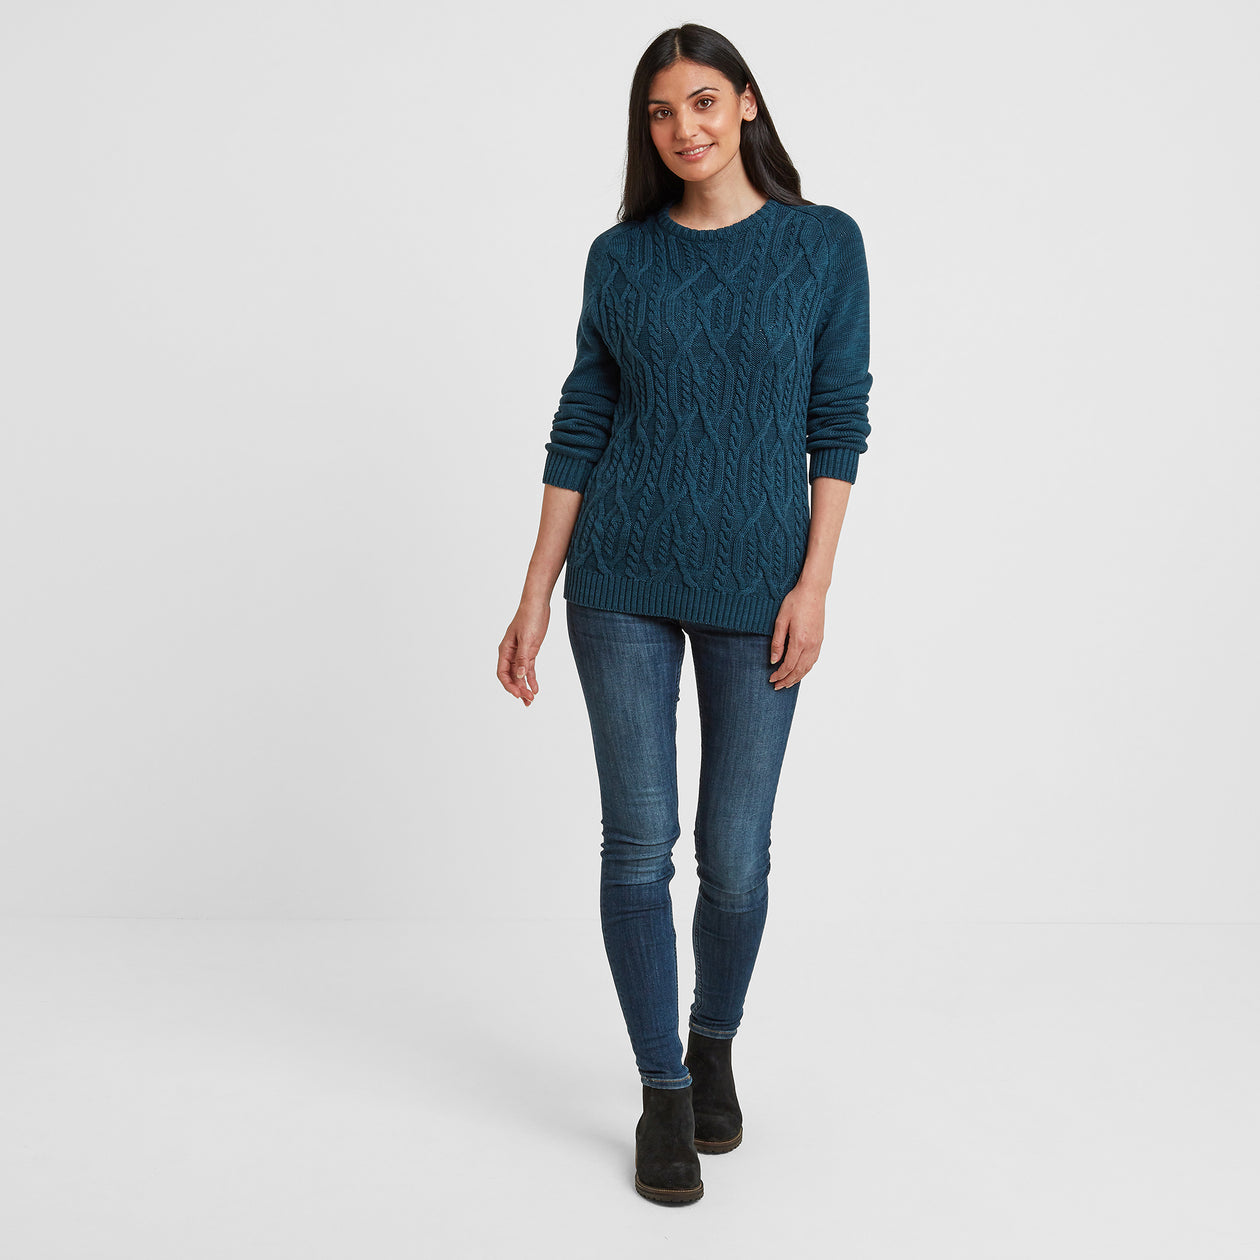 Polly Womens Cable Knit Jumper - Jewel Blue image 4